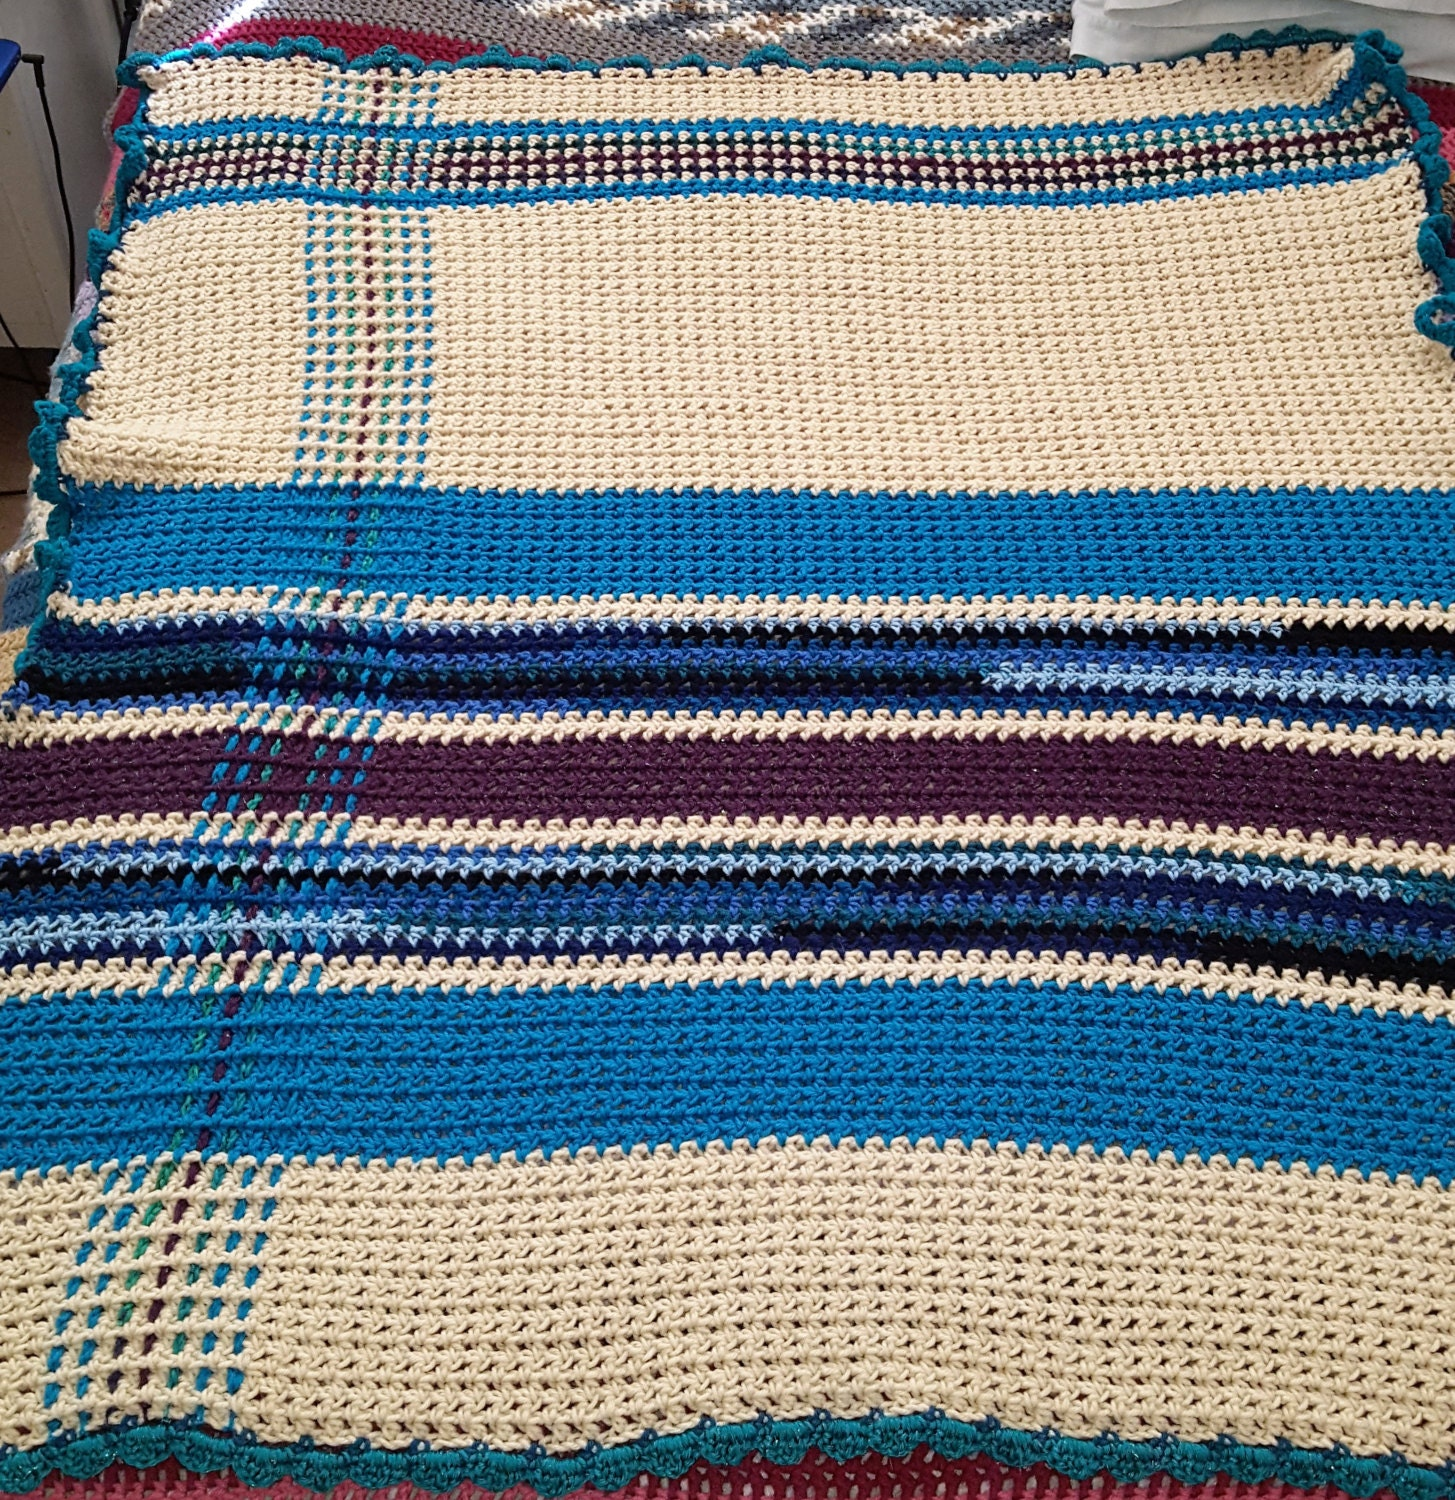 Afghan Throw Blanket Crochet Blanket Plaid by 3TwinsCrafts